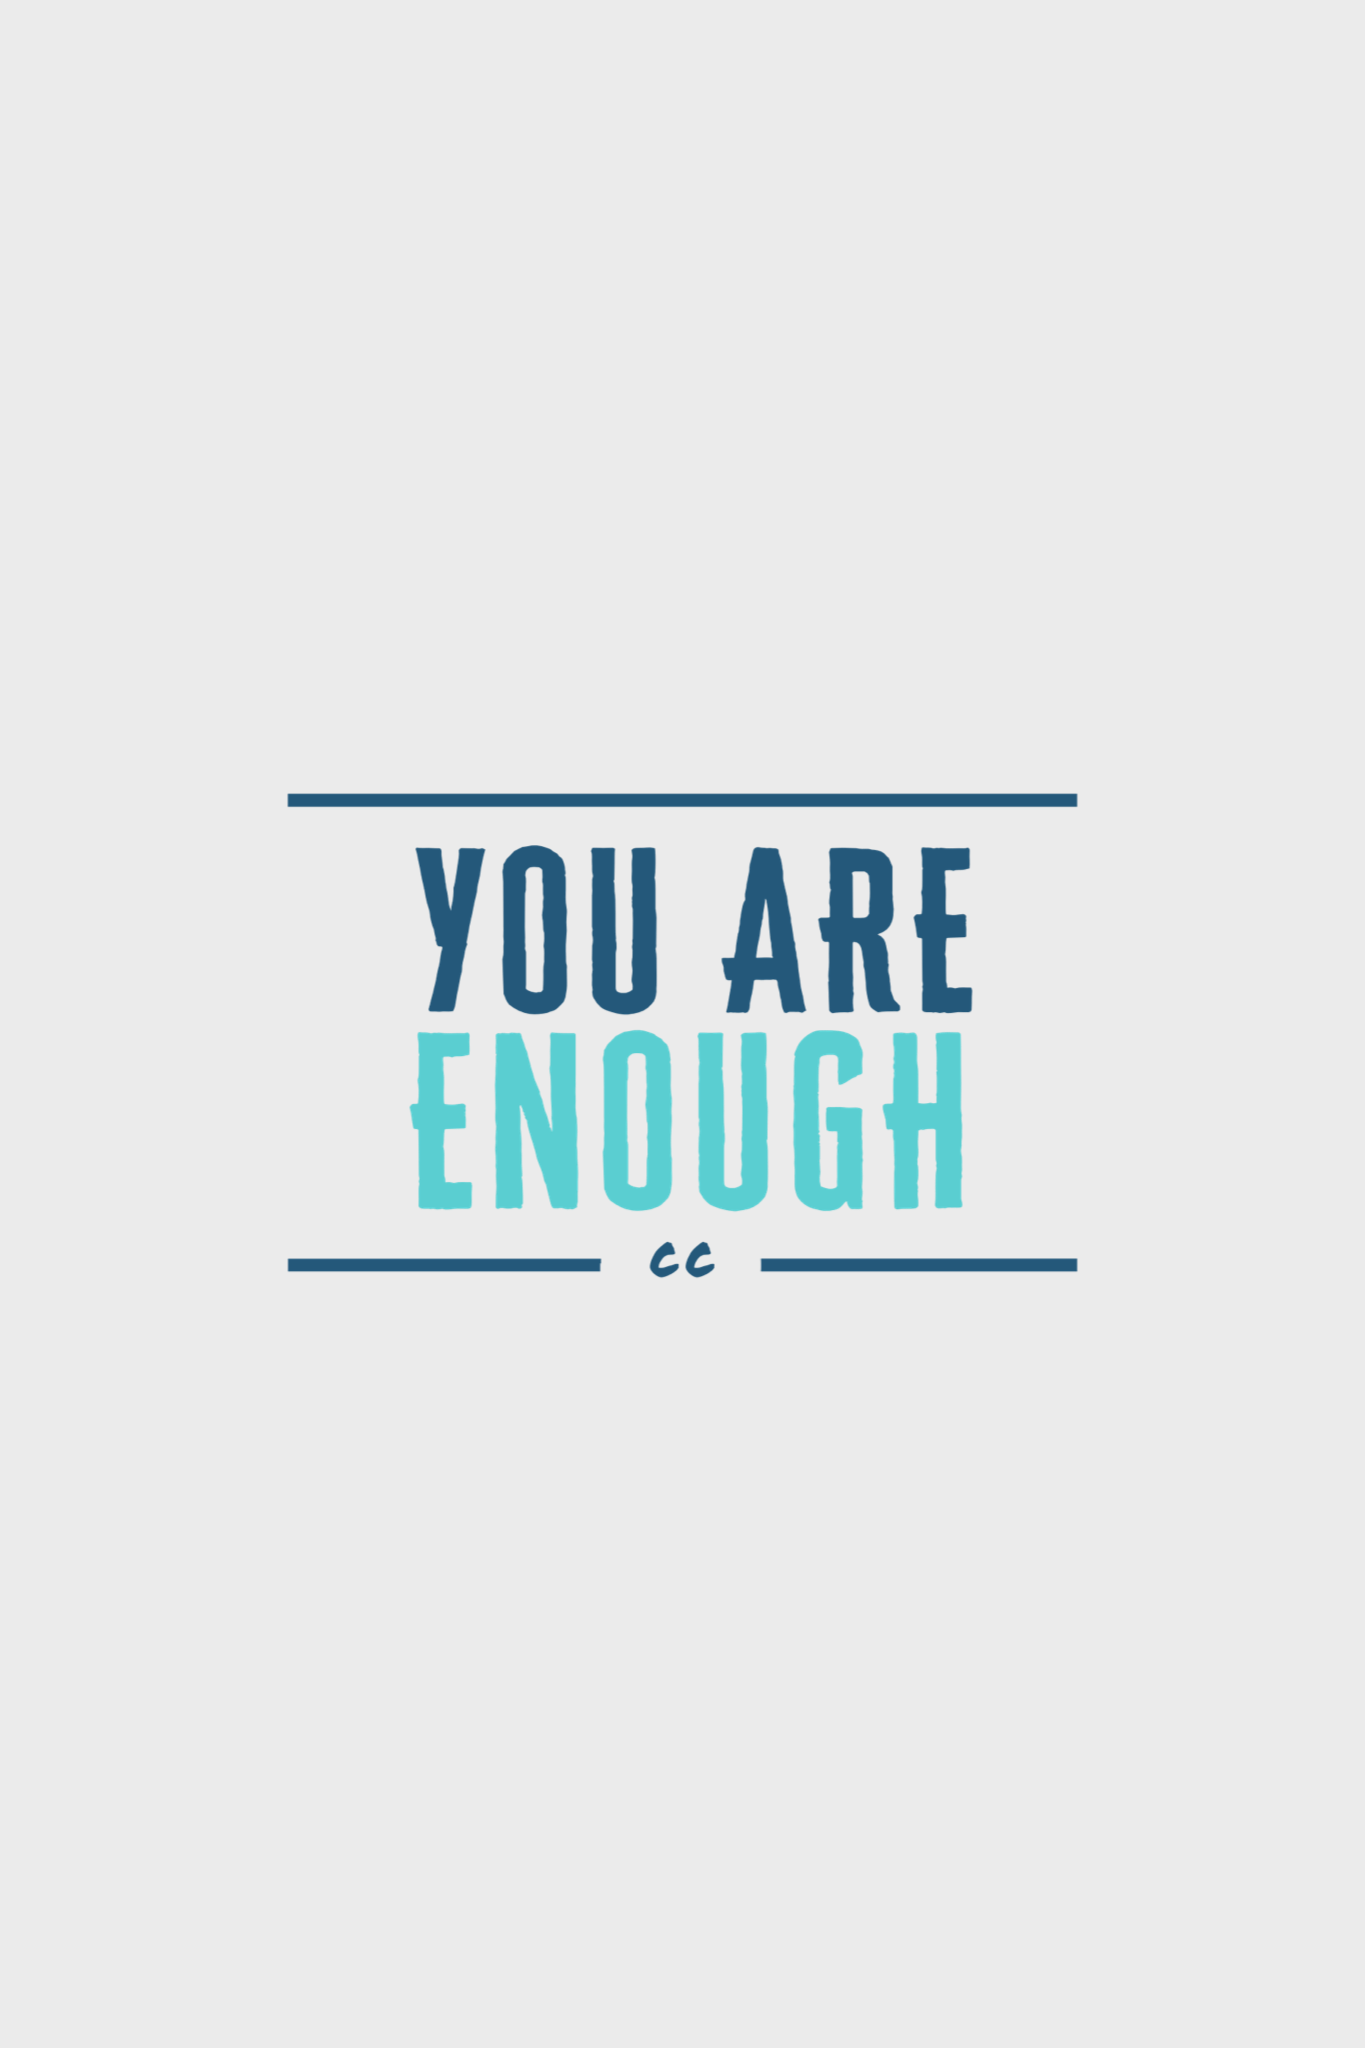 you are enough by cc the love